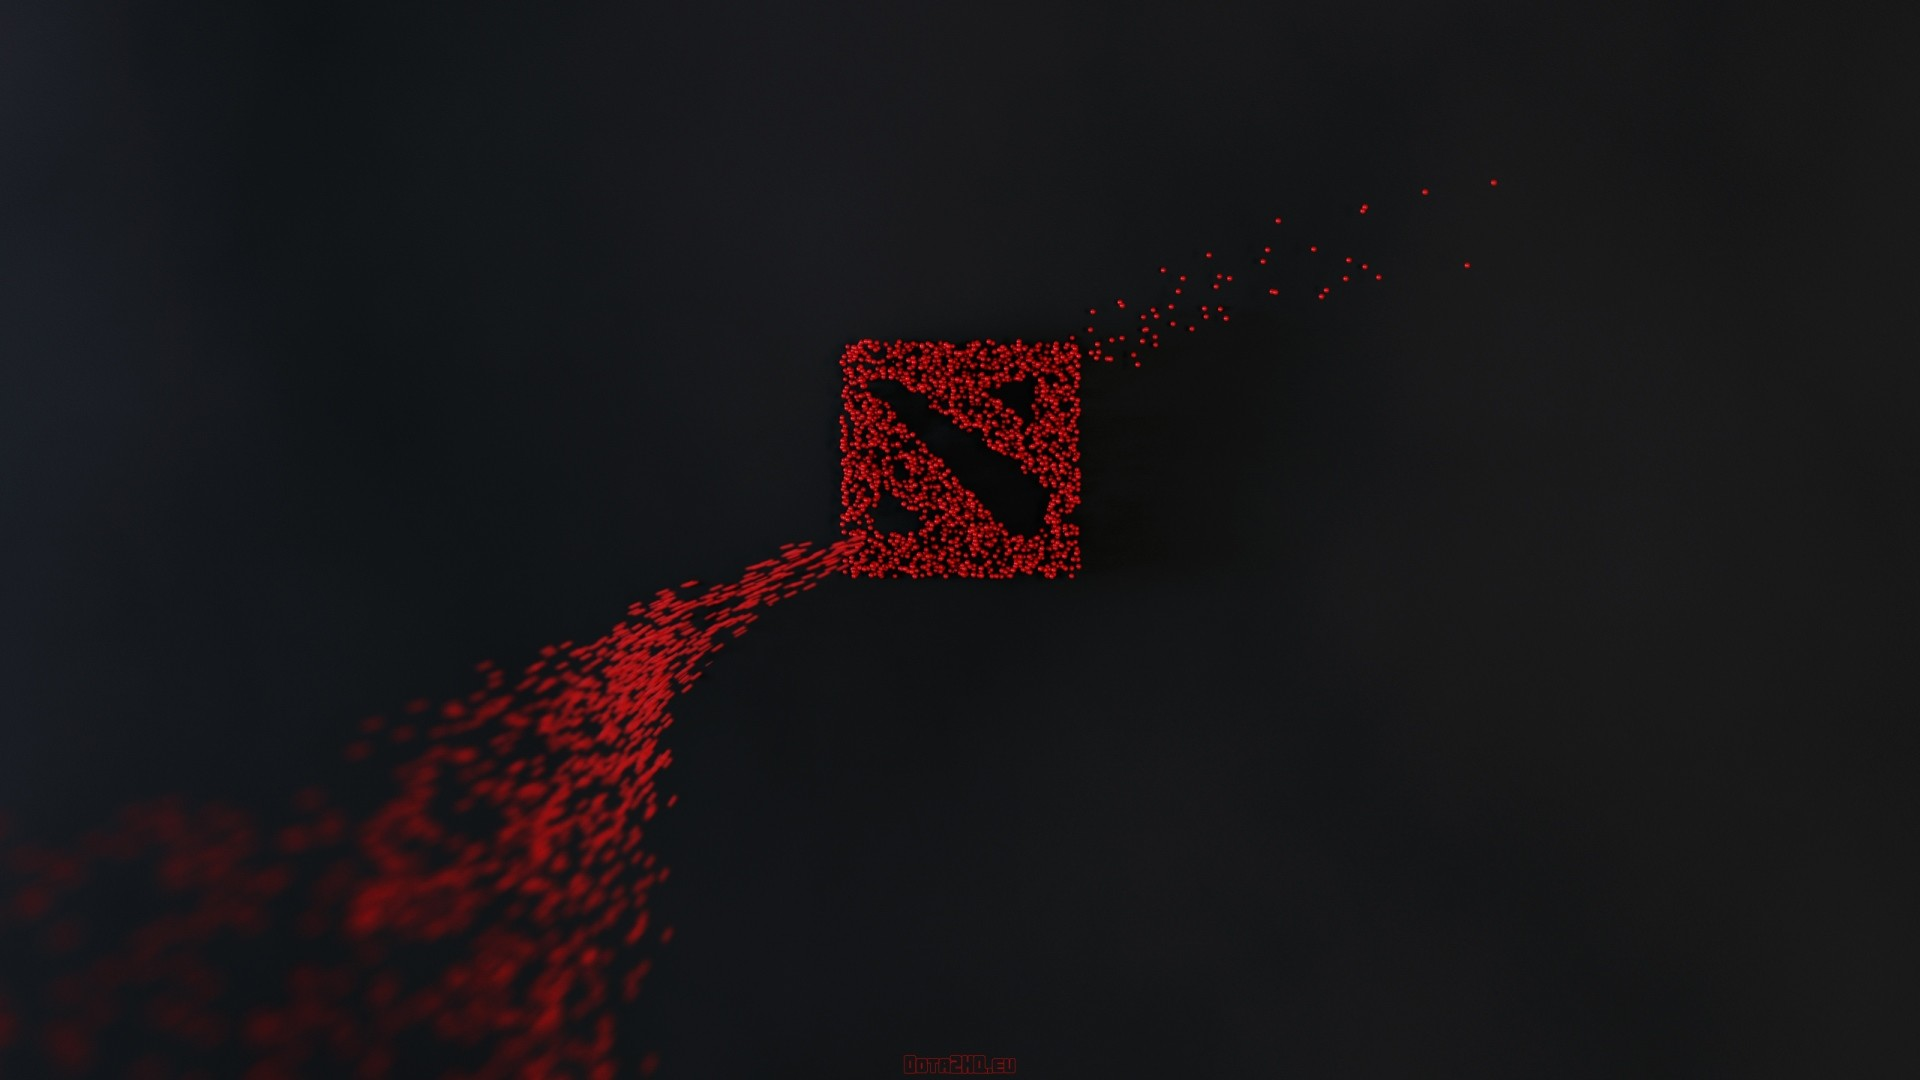 1920x1080  Wallpaper dota 2, dota, art, logo